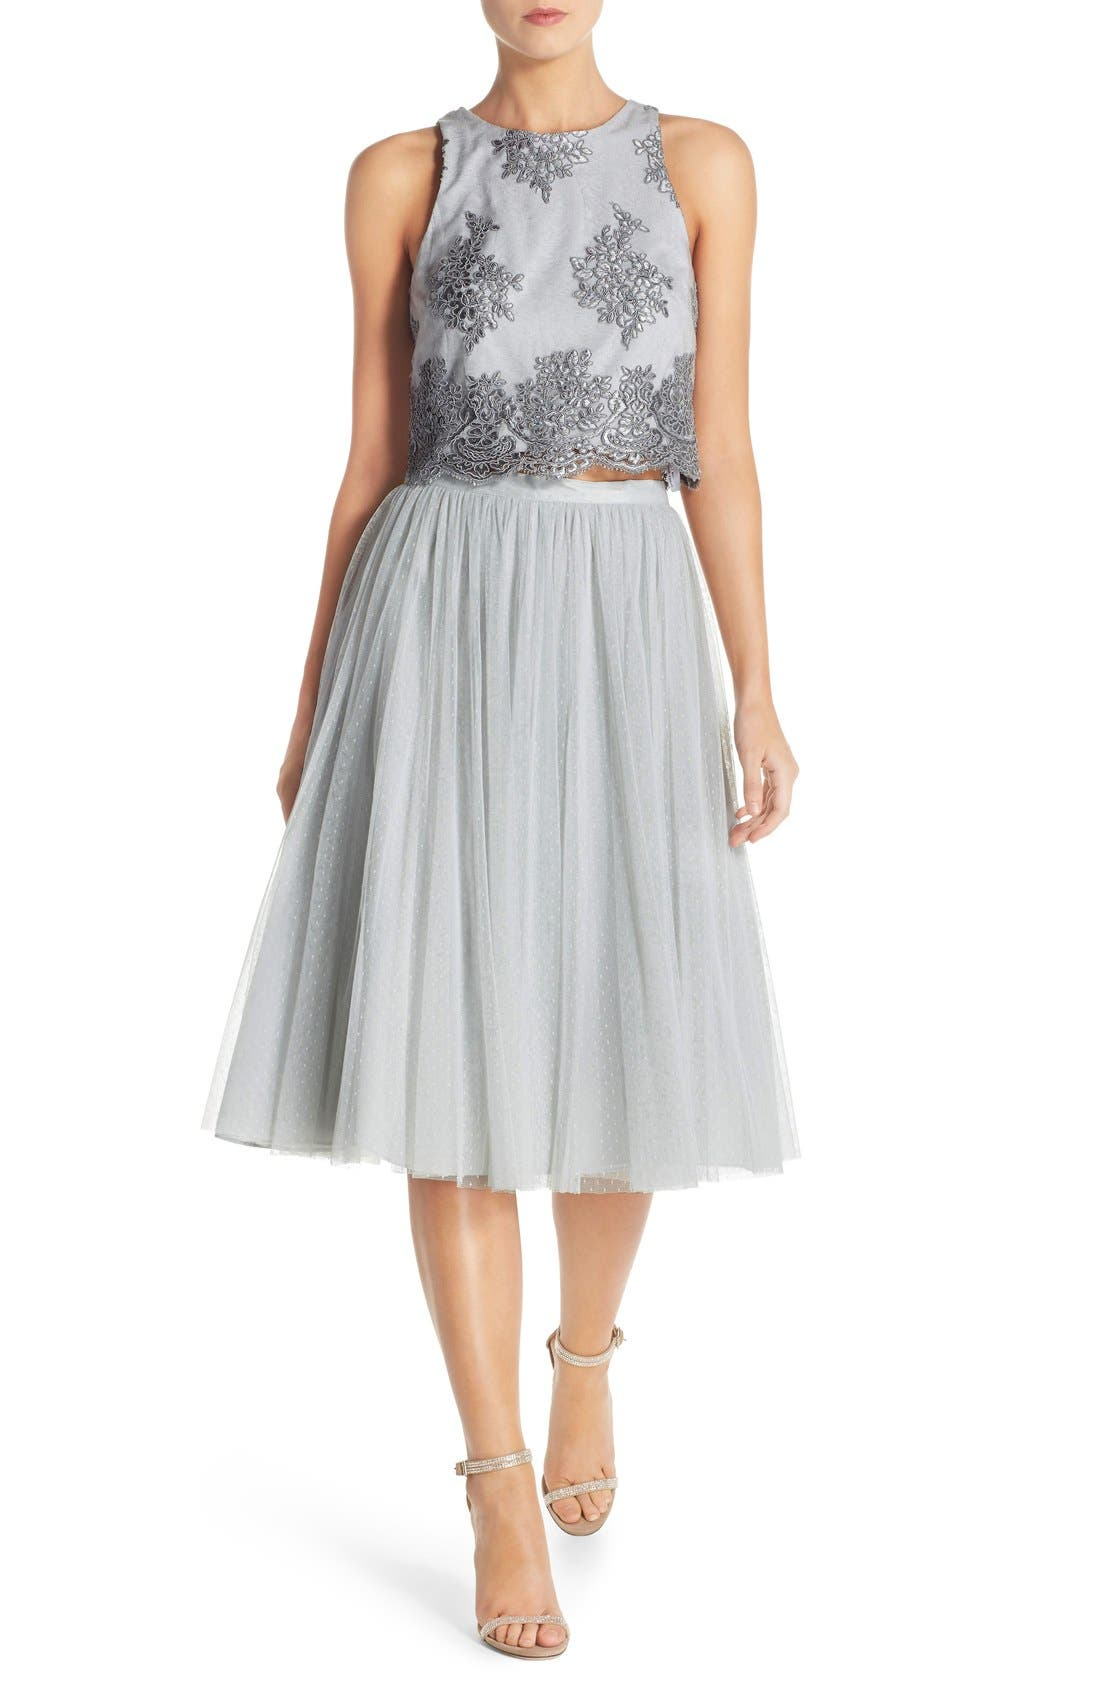 Alternate Image 1 Selected - Donna Morgan 'Beatrix' Lace & Dotted Tulle Two-Piece Dress